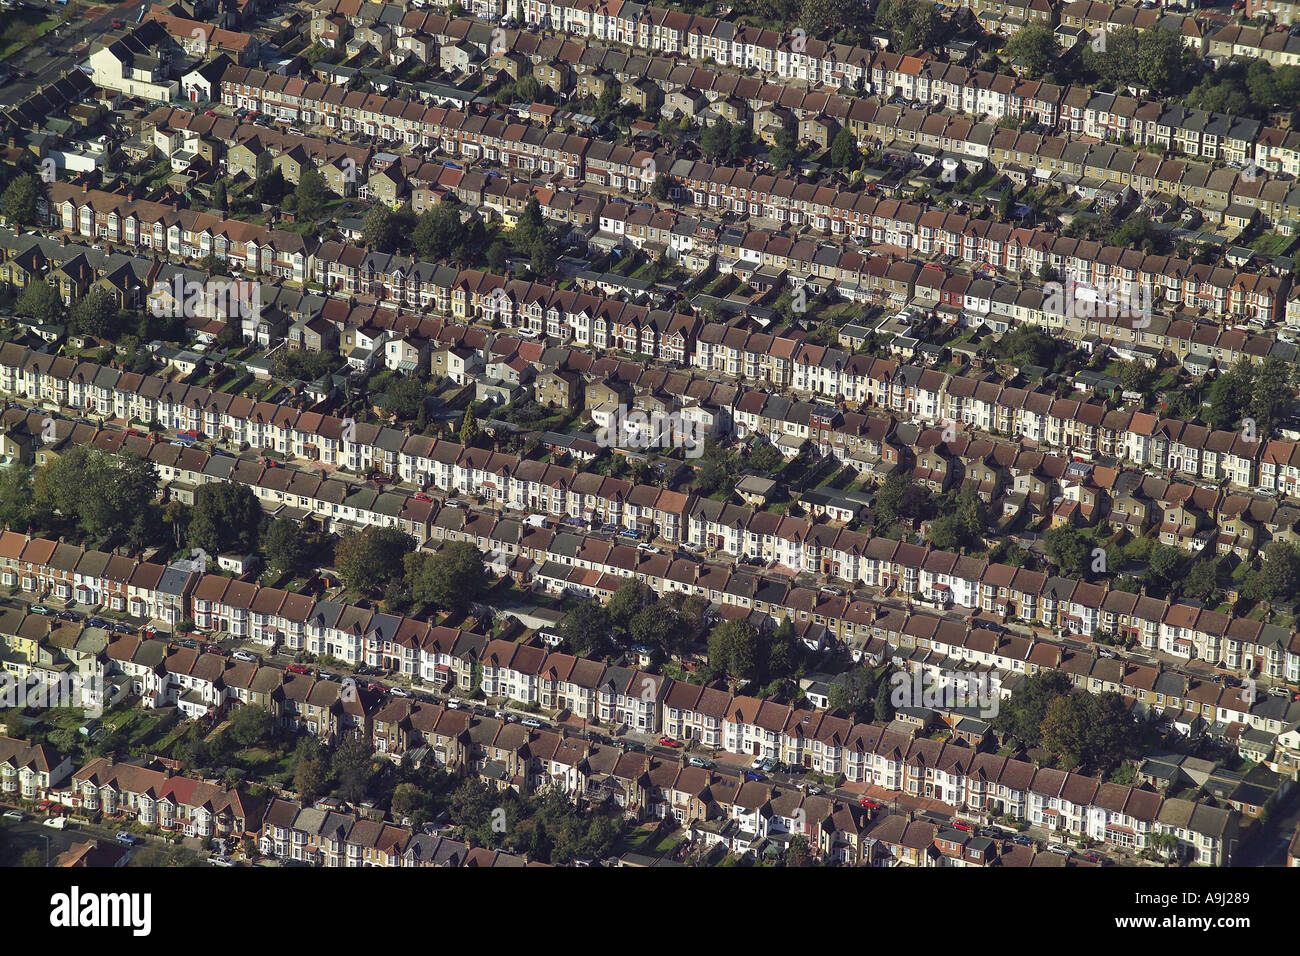 Aerial view of terraced housing with gardens in Ilford, Essex - Stock Image